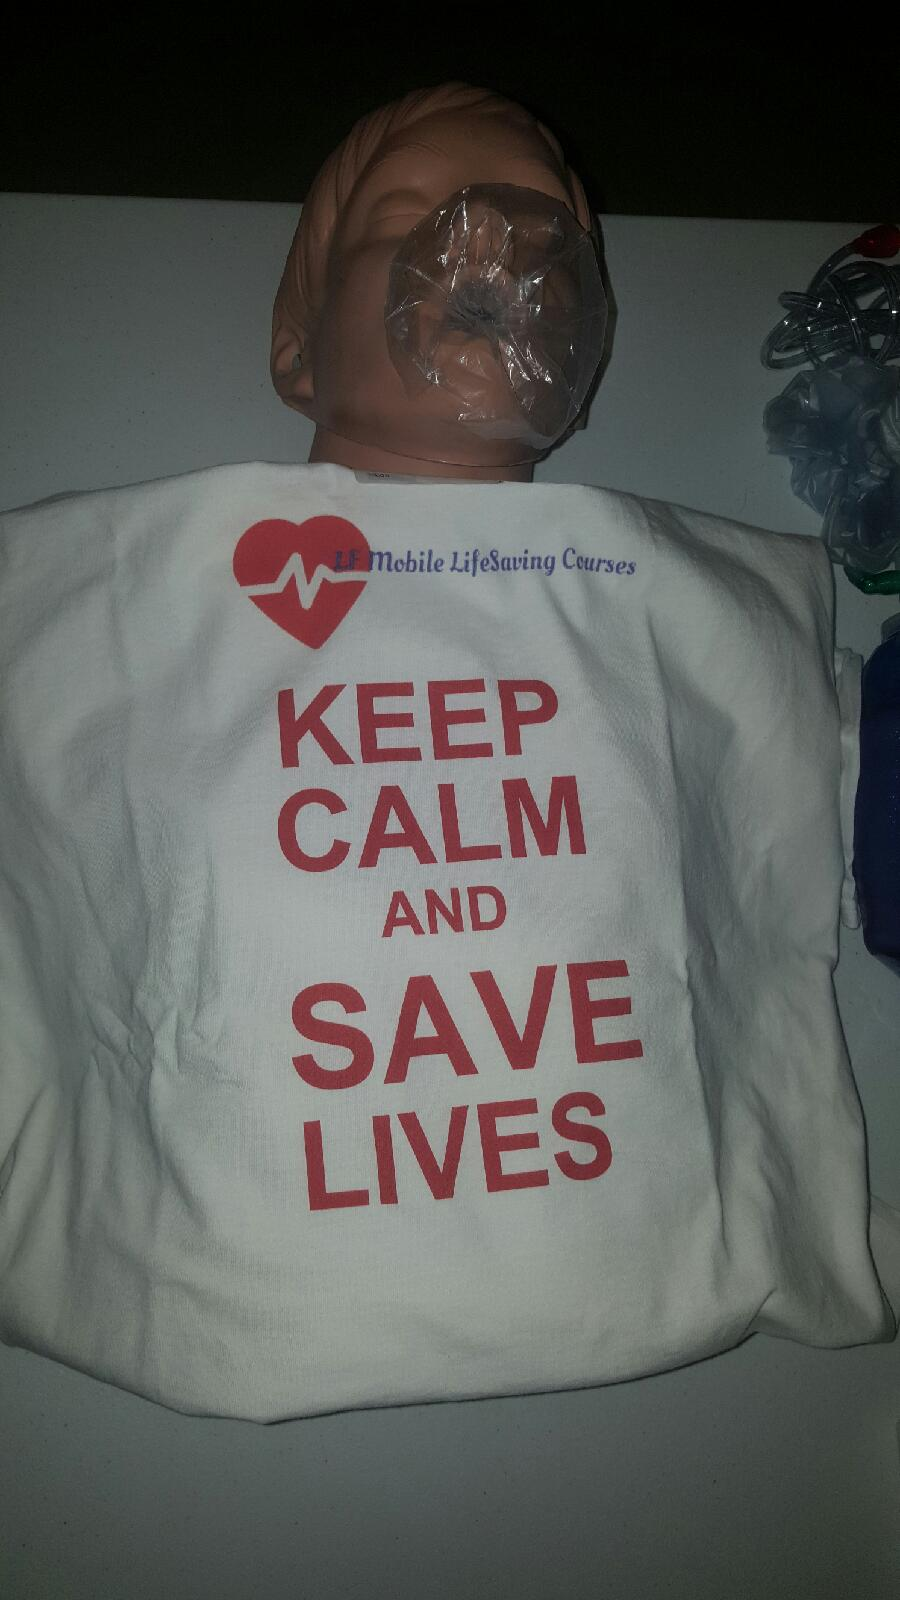 WE SAVE LIVES!